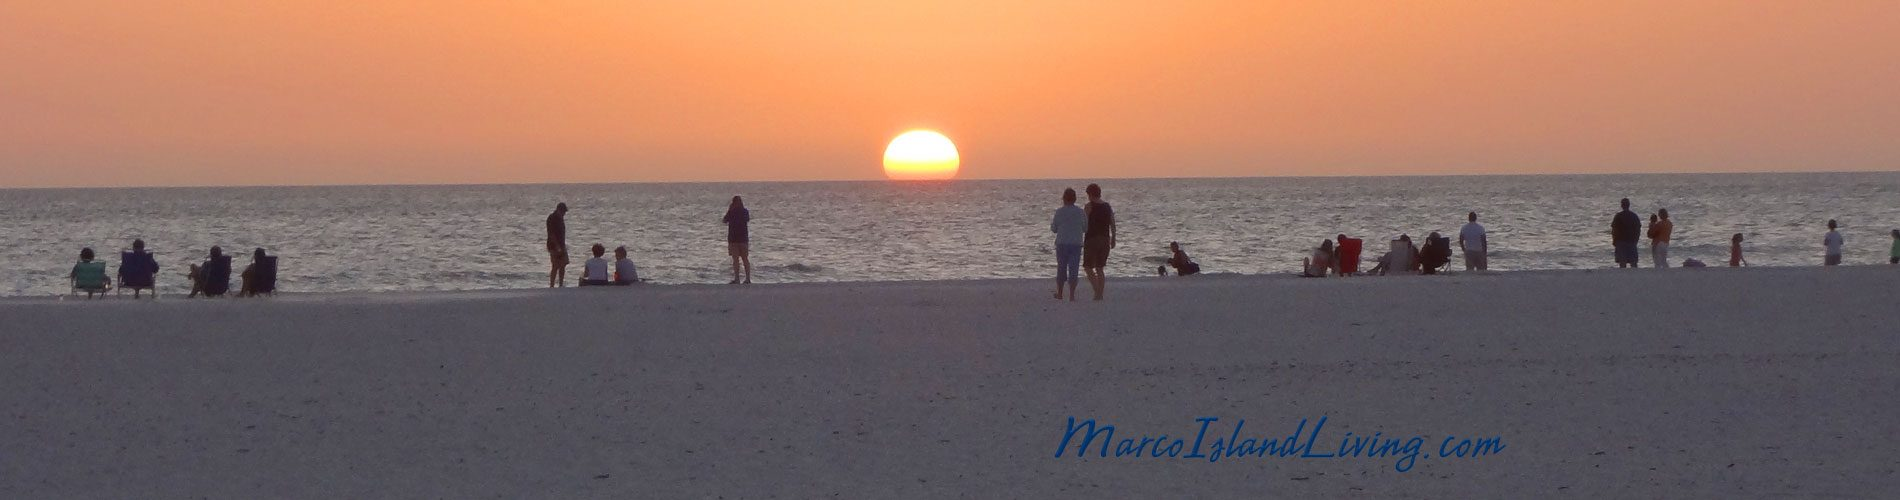 Marco Island Vacation Rental Homes